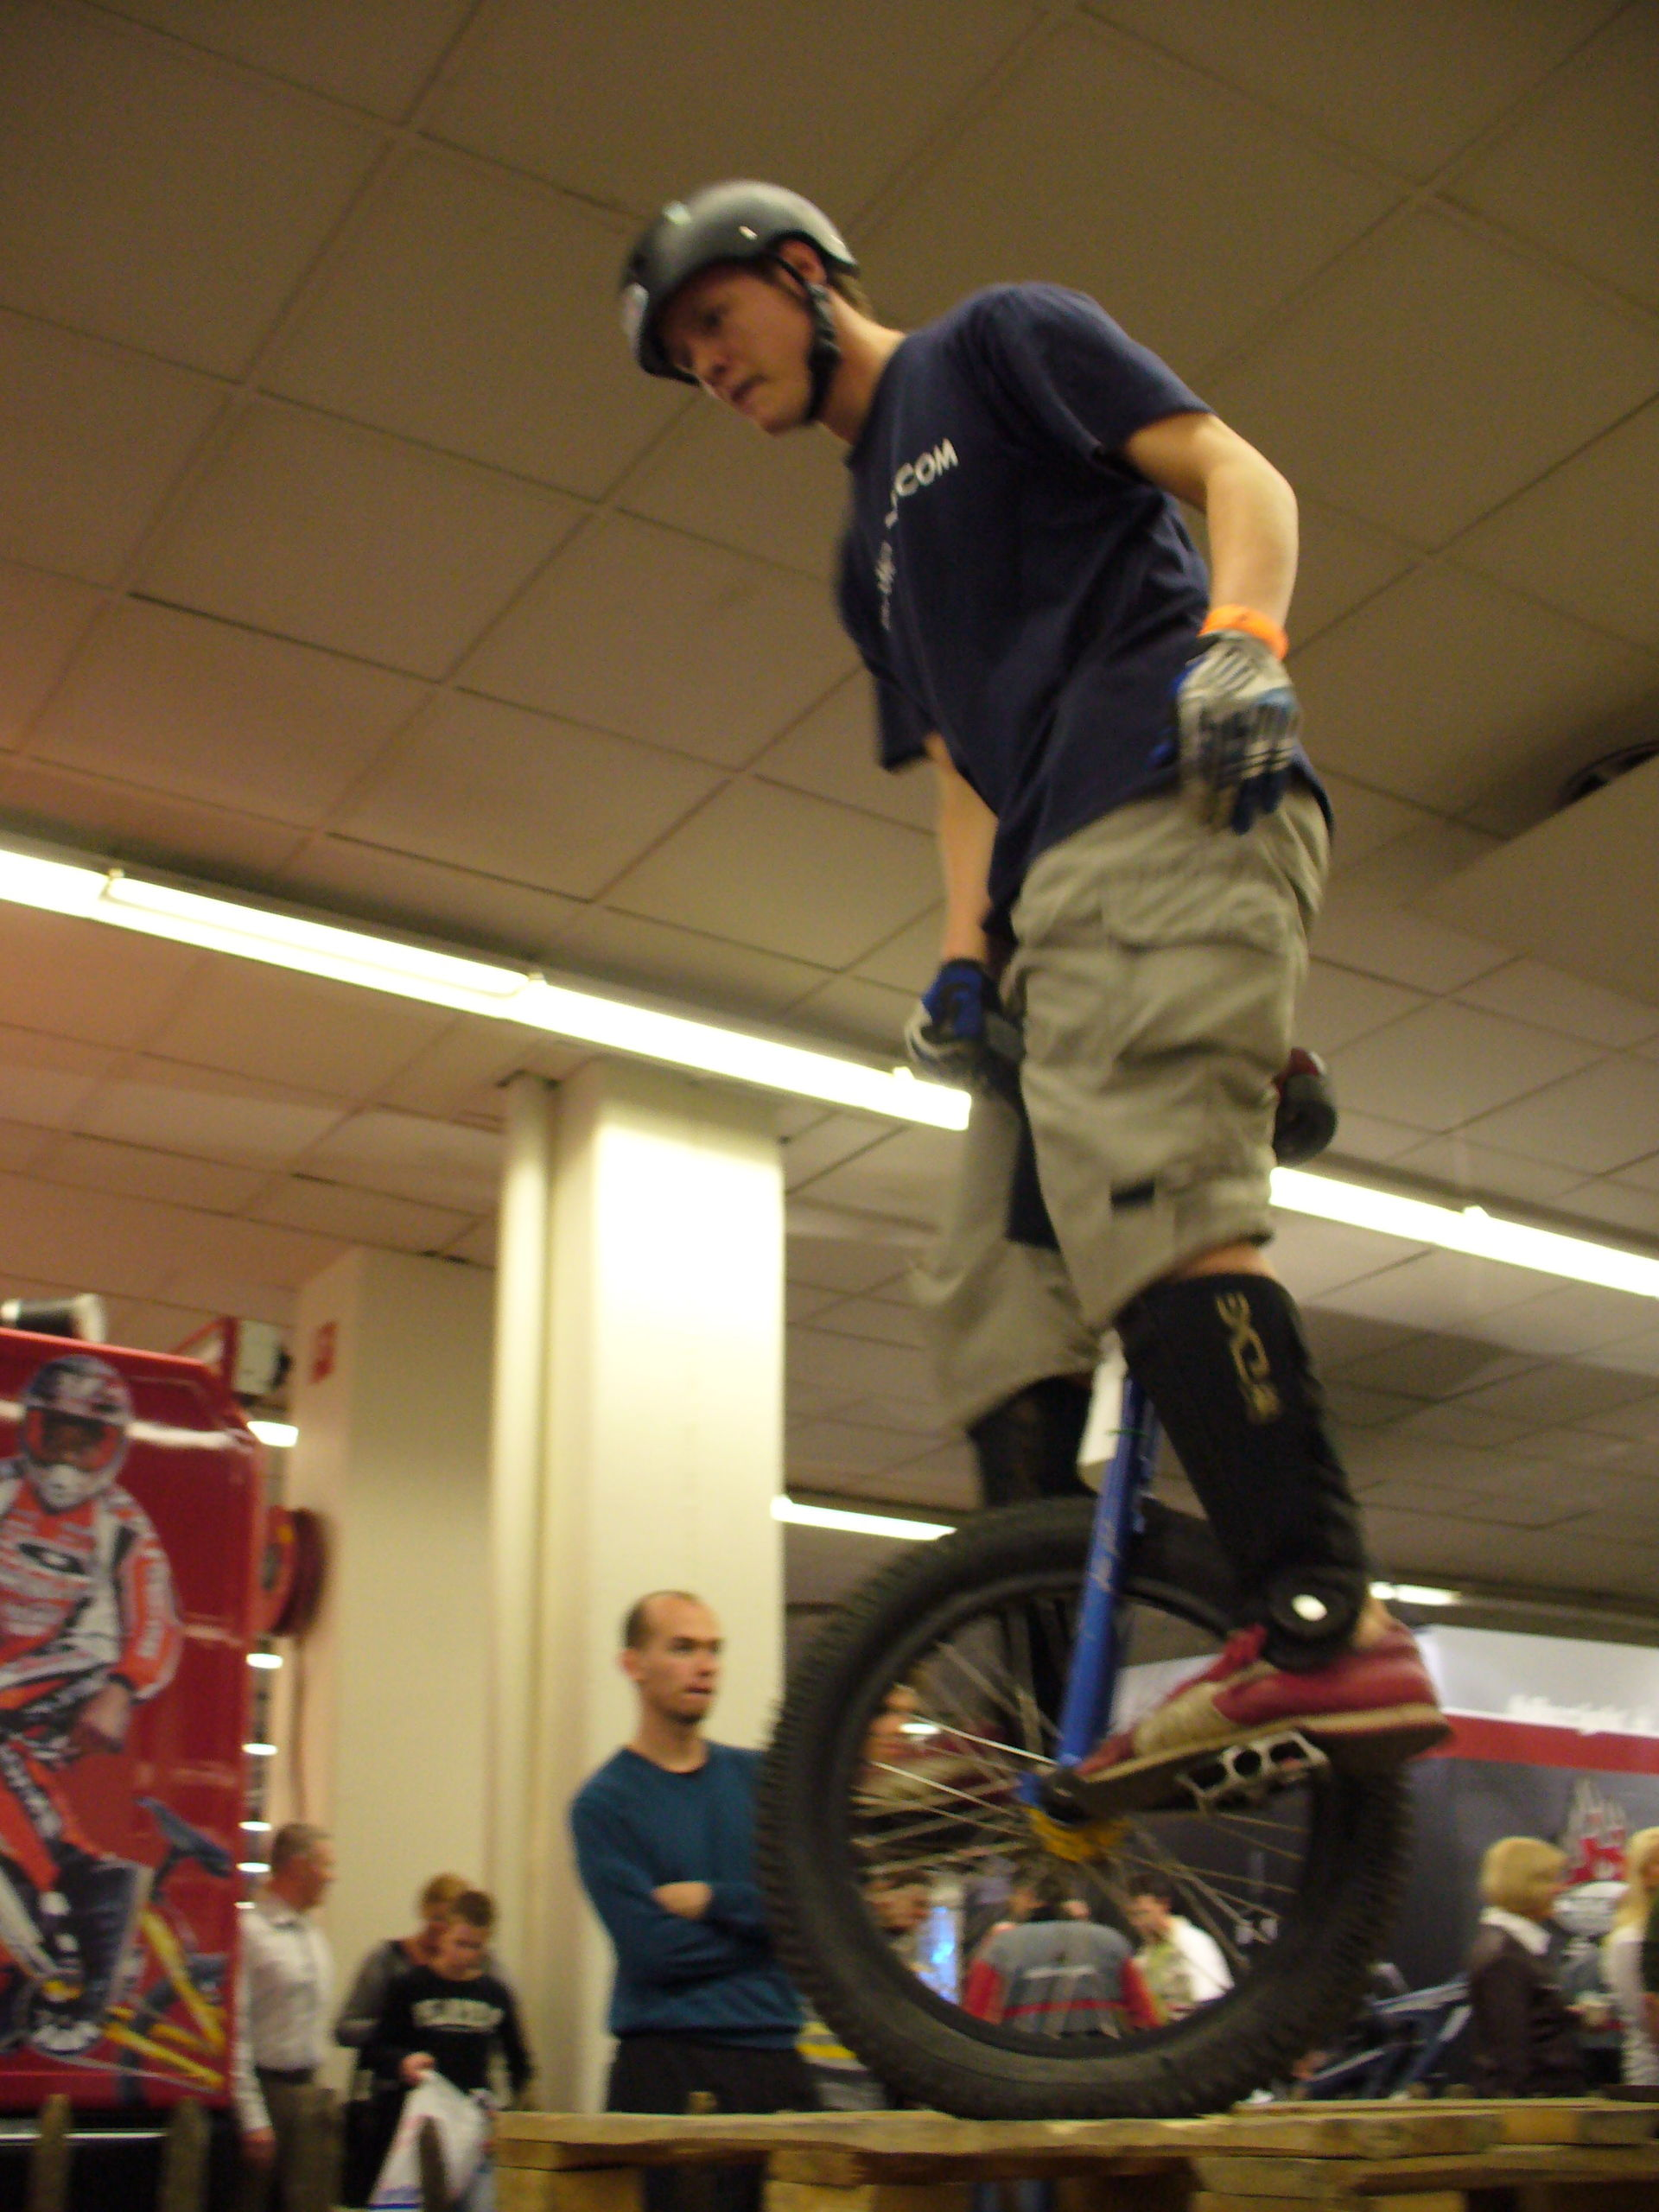 Unicycle Trials Wikipedia